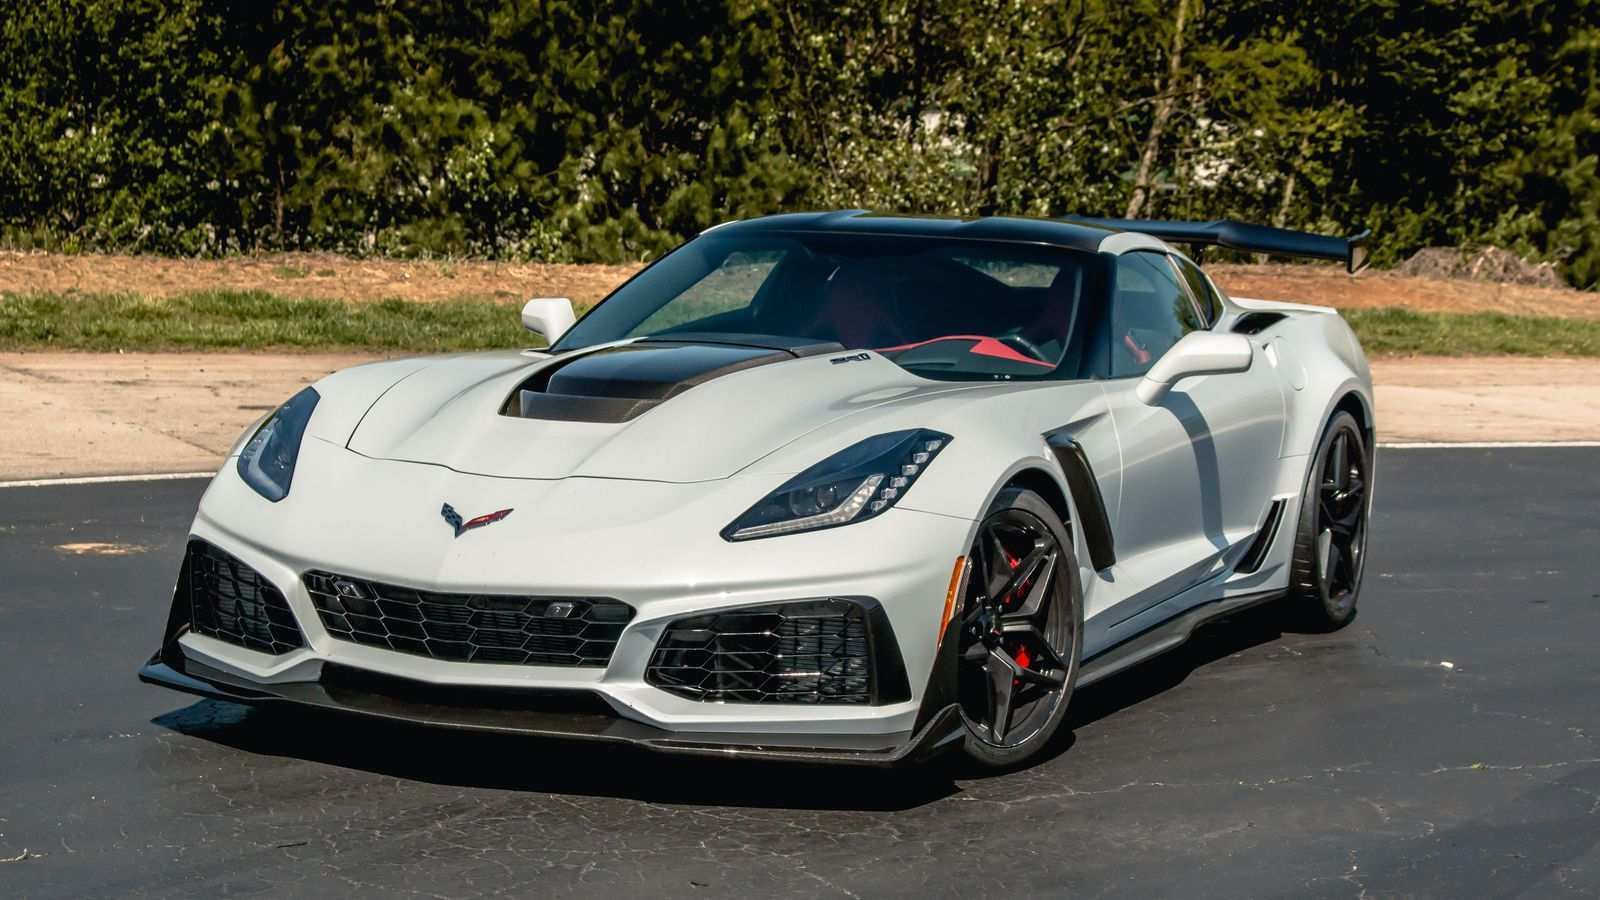 74 New 2019 Chevrolet Zr1 Price Redesign and Concept for 2019 Chevrolet Zr1 Price